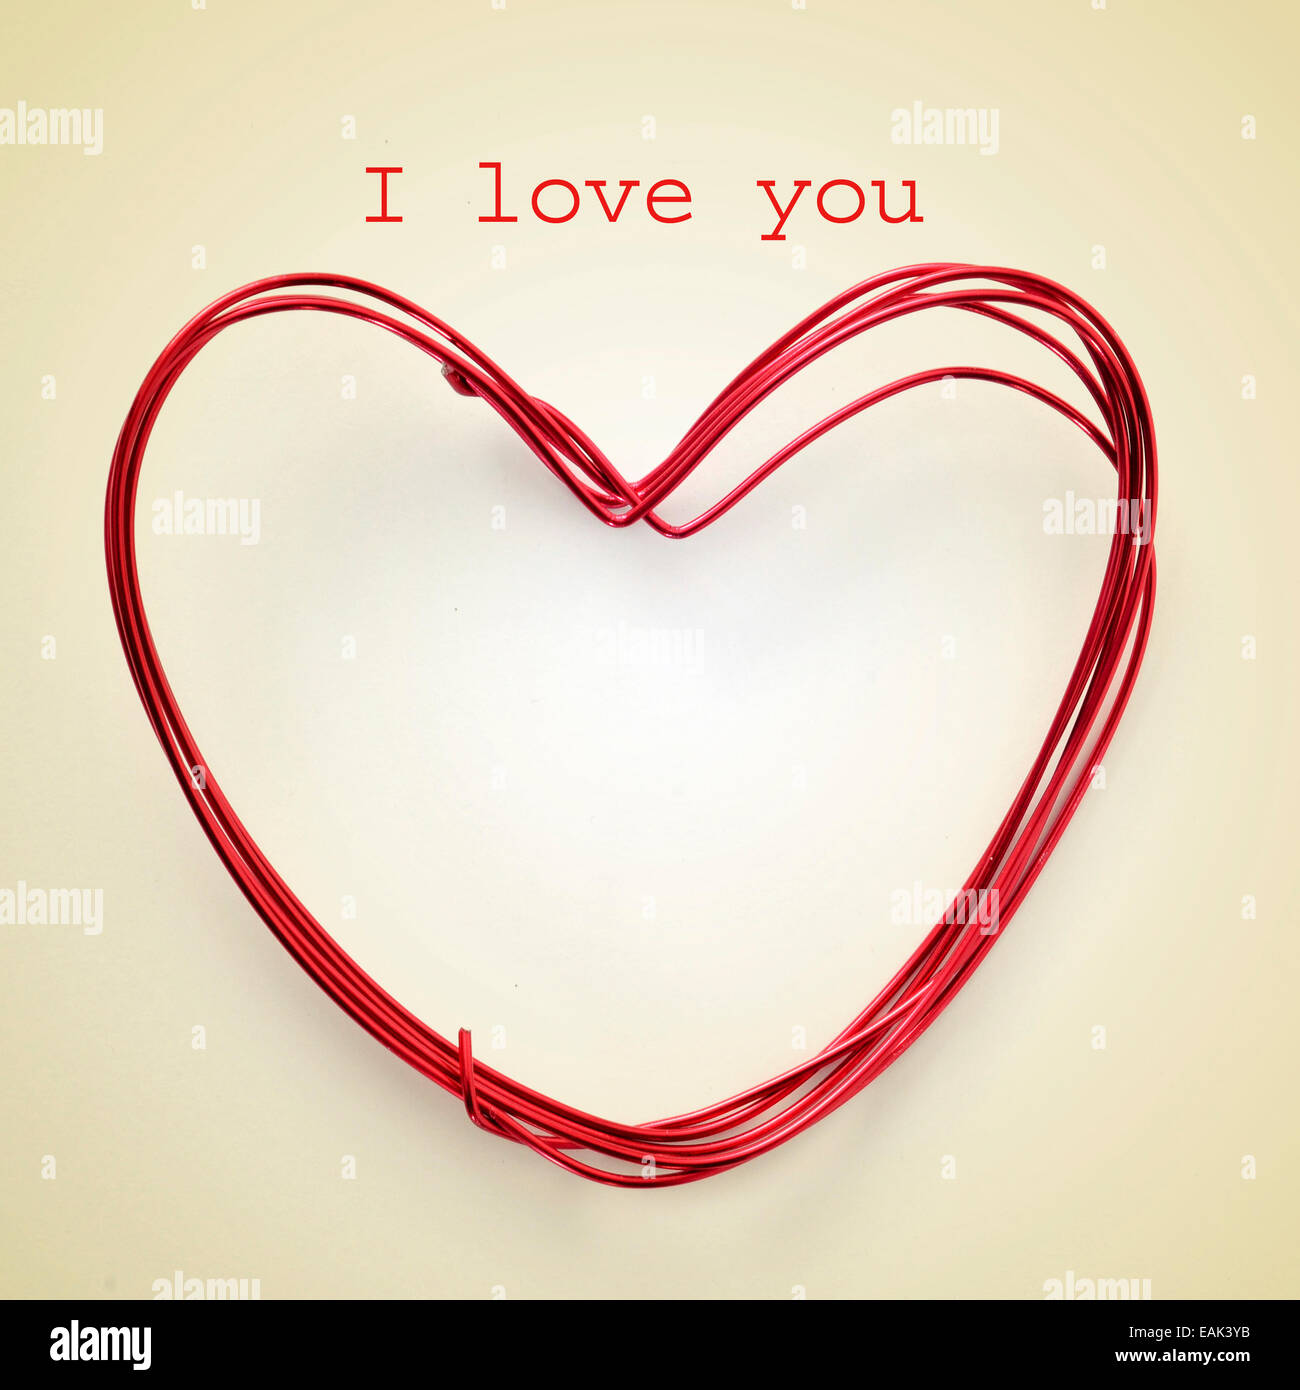 sentence I love you and a heart-shaped roll of wire on a beige background, with a retro effect Stock Photo